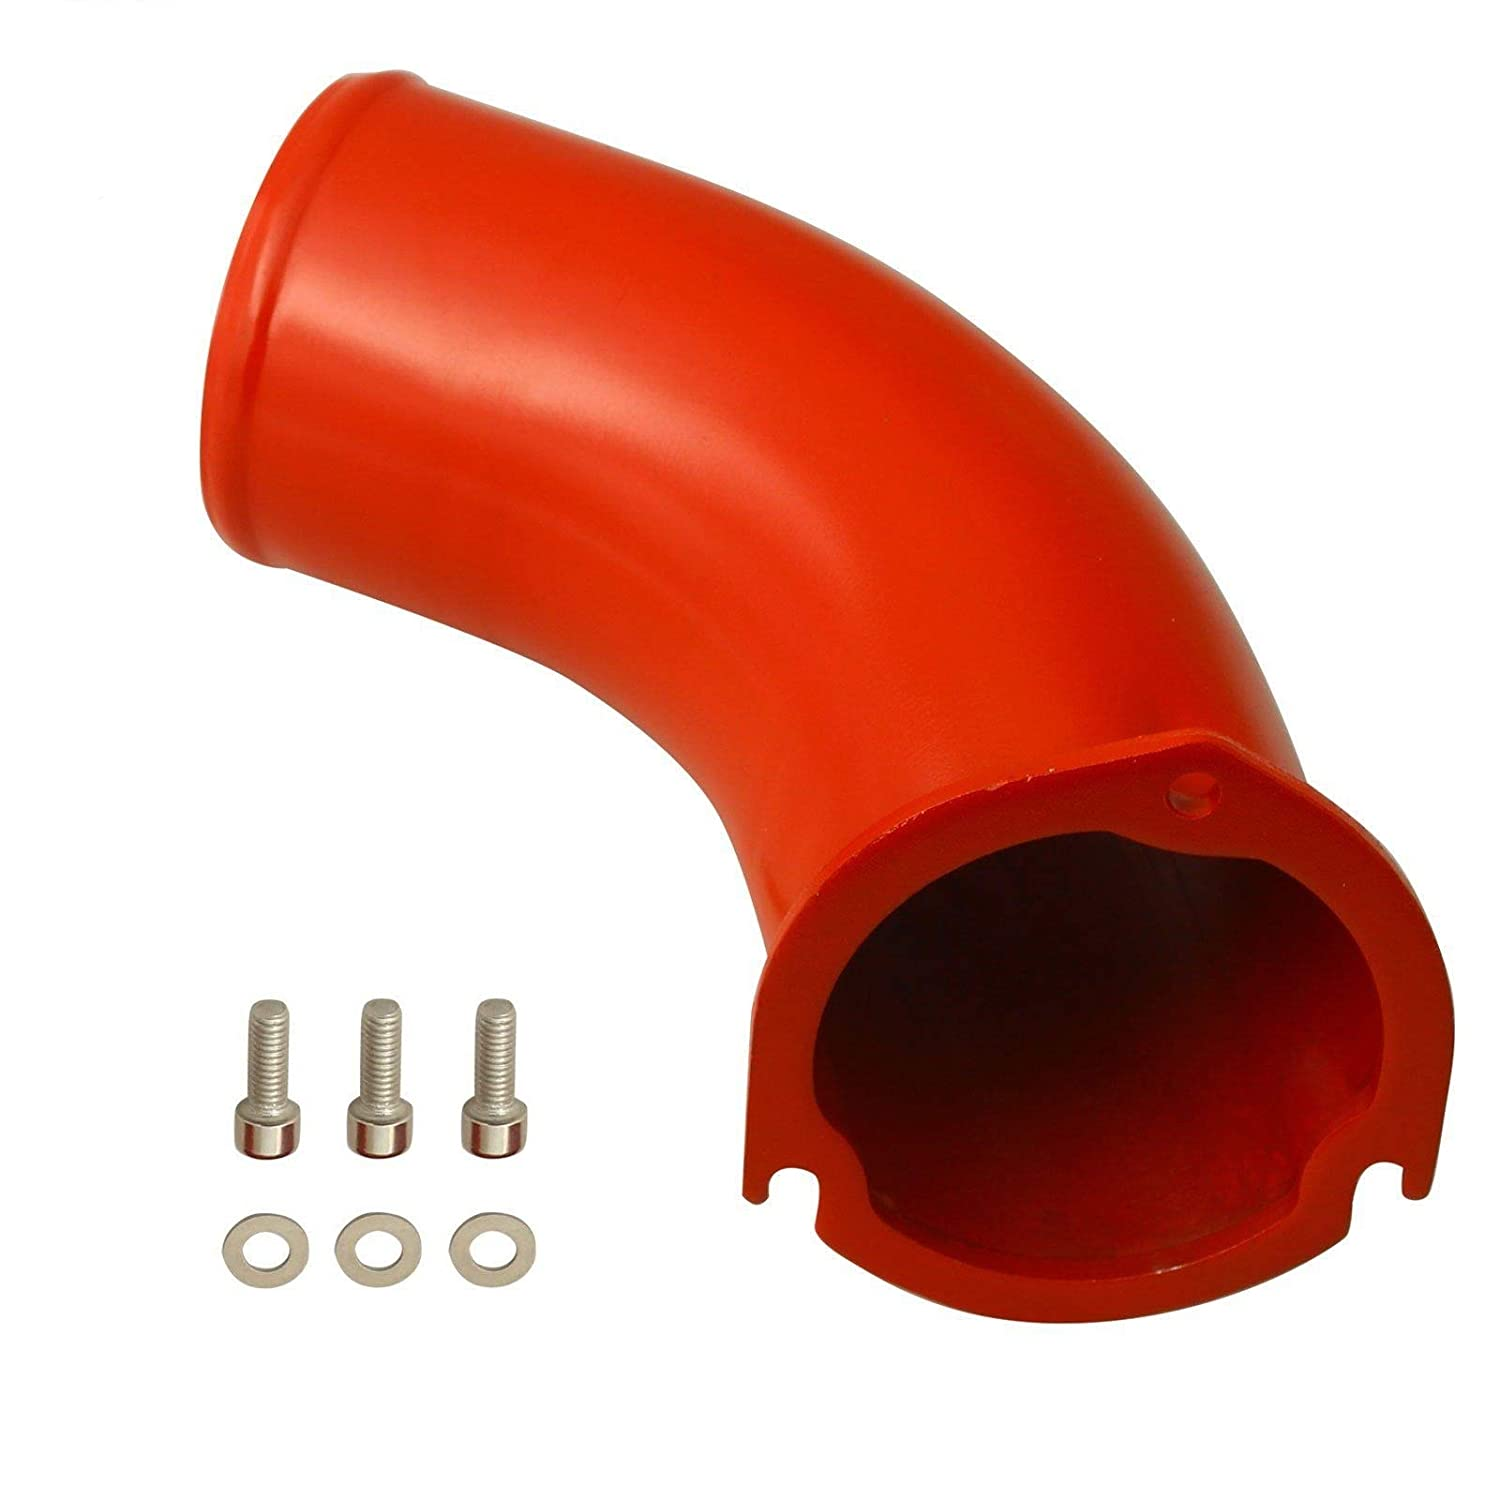 yjracing 3.5' Turbo Air Intake Elbow Fit for 2001-2004 Chevy GMC 6.6L V8 Duramax Diesel LB7 Red